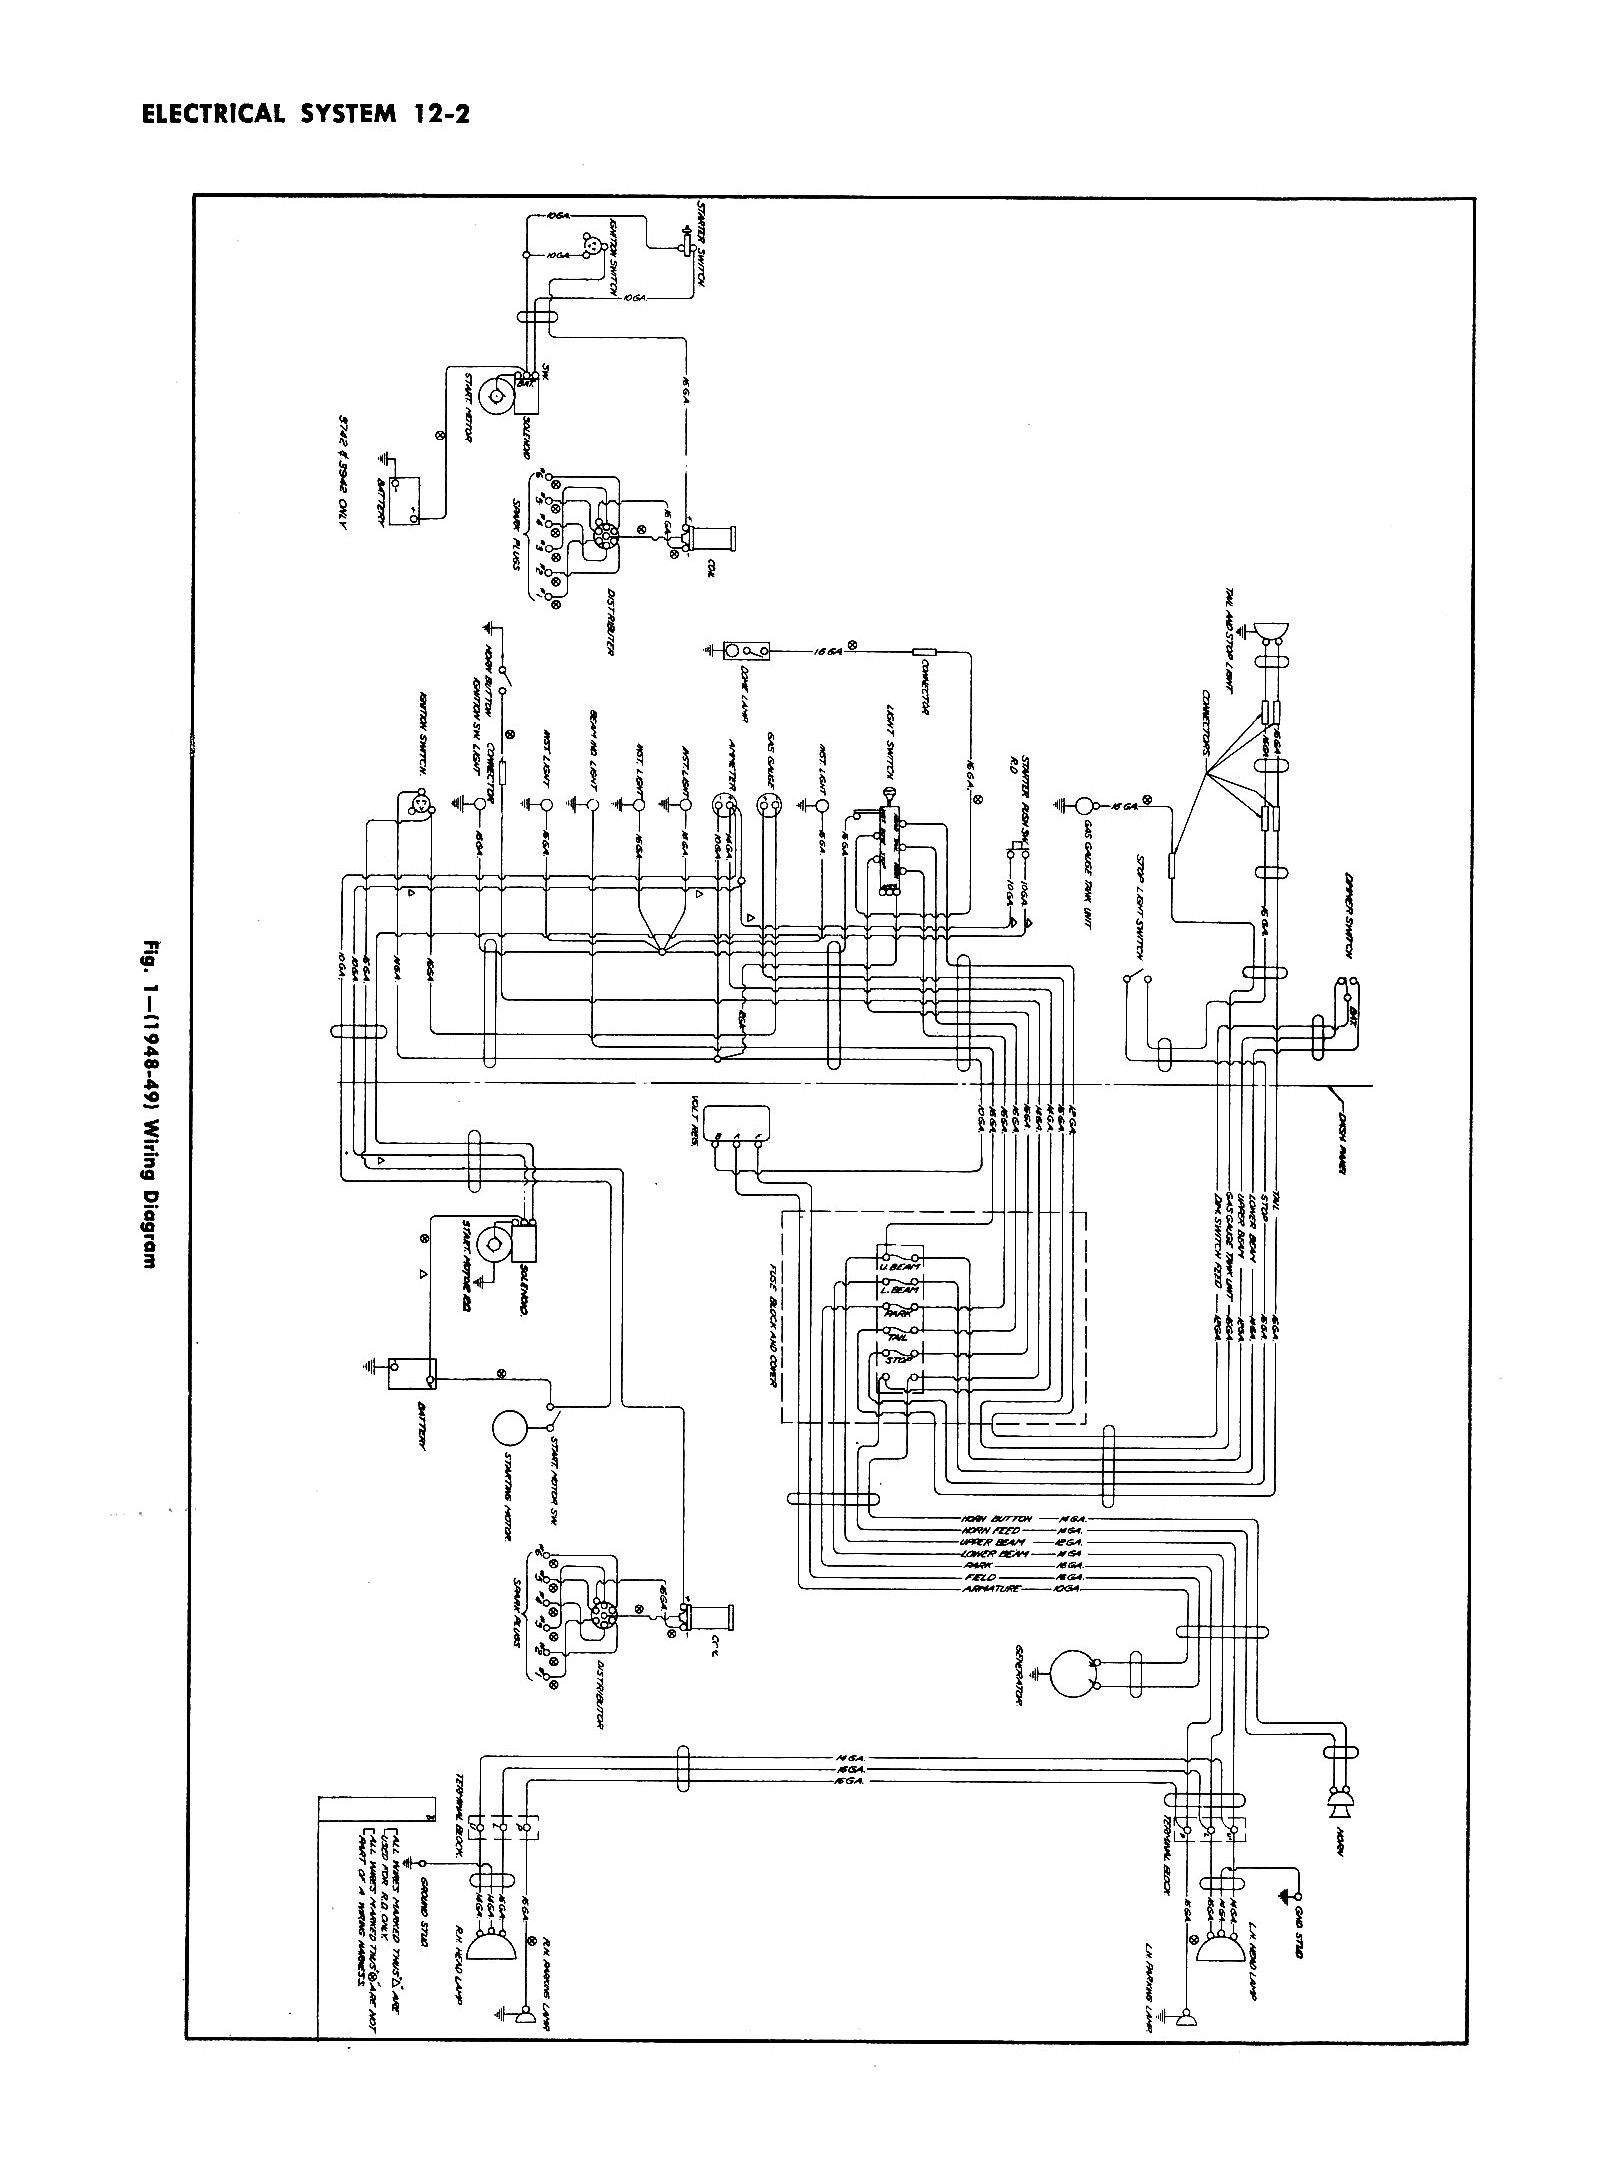 1959 Gmc Truck Electrical Wiring Diagrams Worksheet And 2006 Zx 14 Headlight Diagram 1958 Experts Of U2022 Rh Evilcloud Co Uk 2002